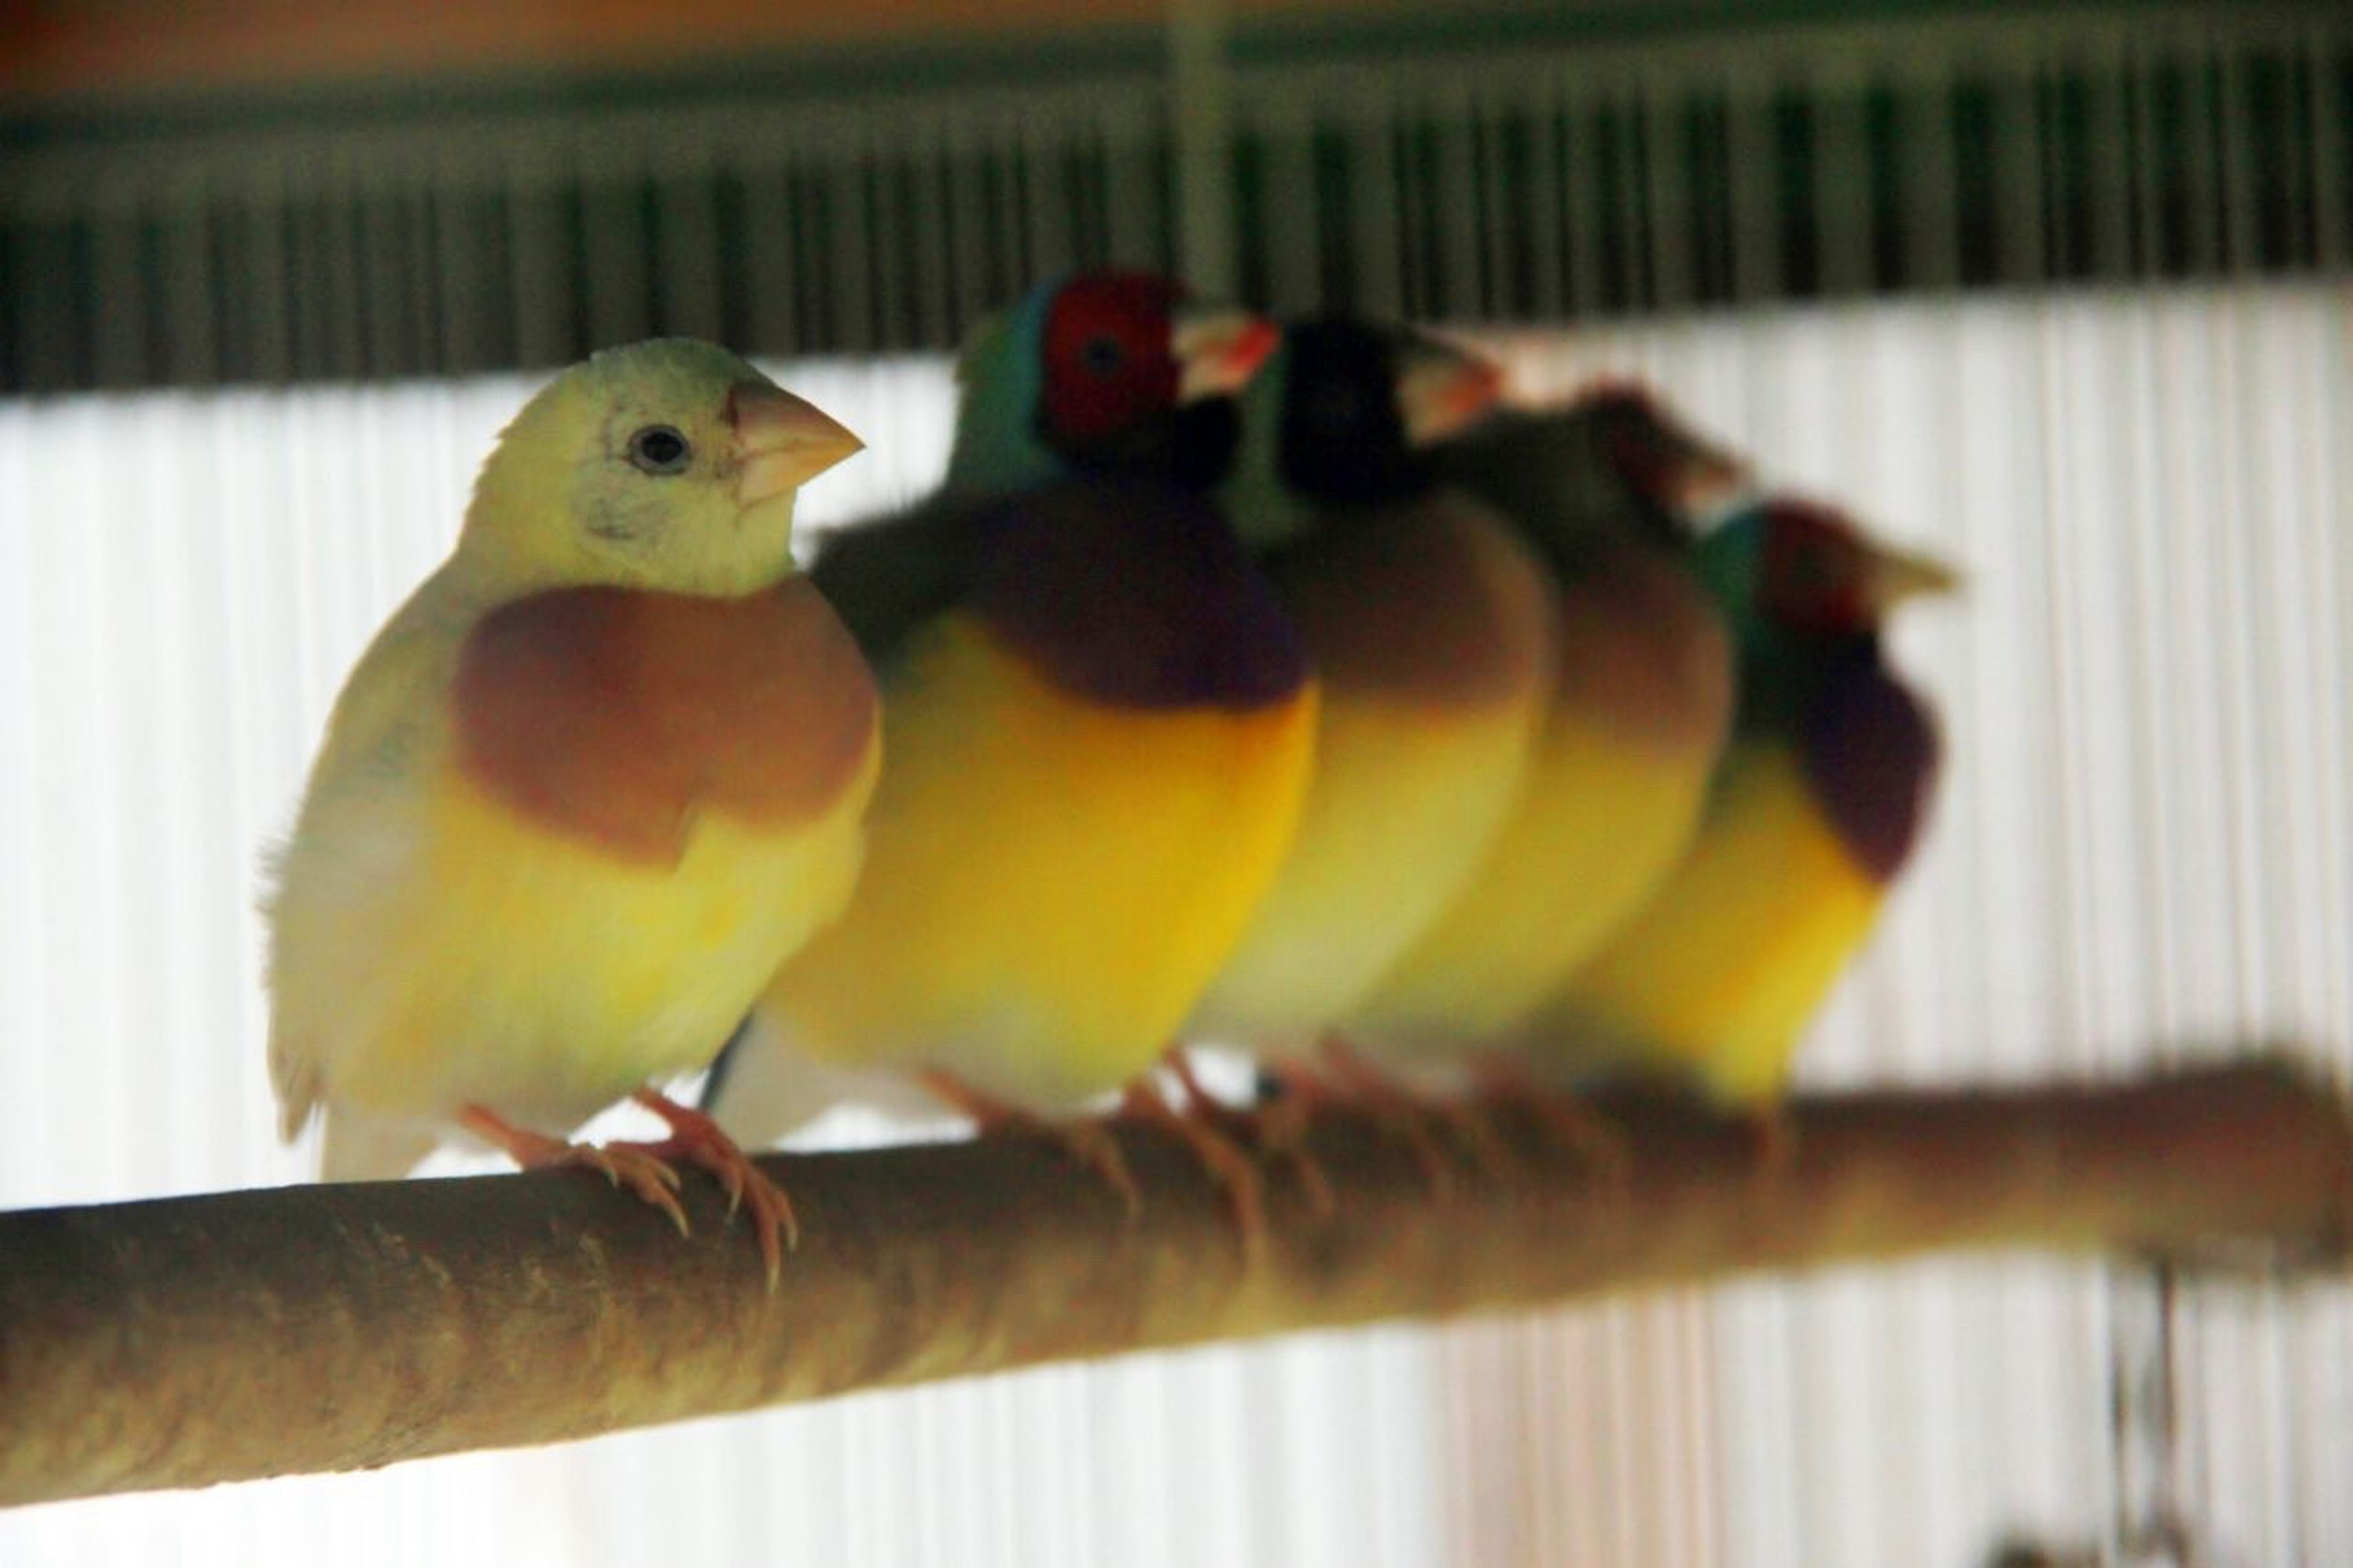 animal themes, bird, yellow, selective focus, one animal, close-up, perching, parrot, indoors, cage, vibrant color, front view, pets, beak, zoology, focus on foreground, multi colored, colorful, no people, domestic animals